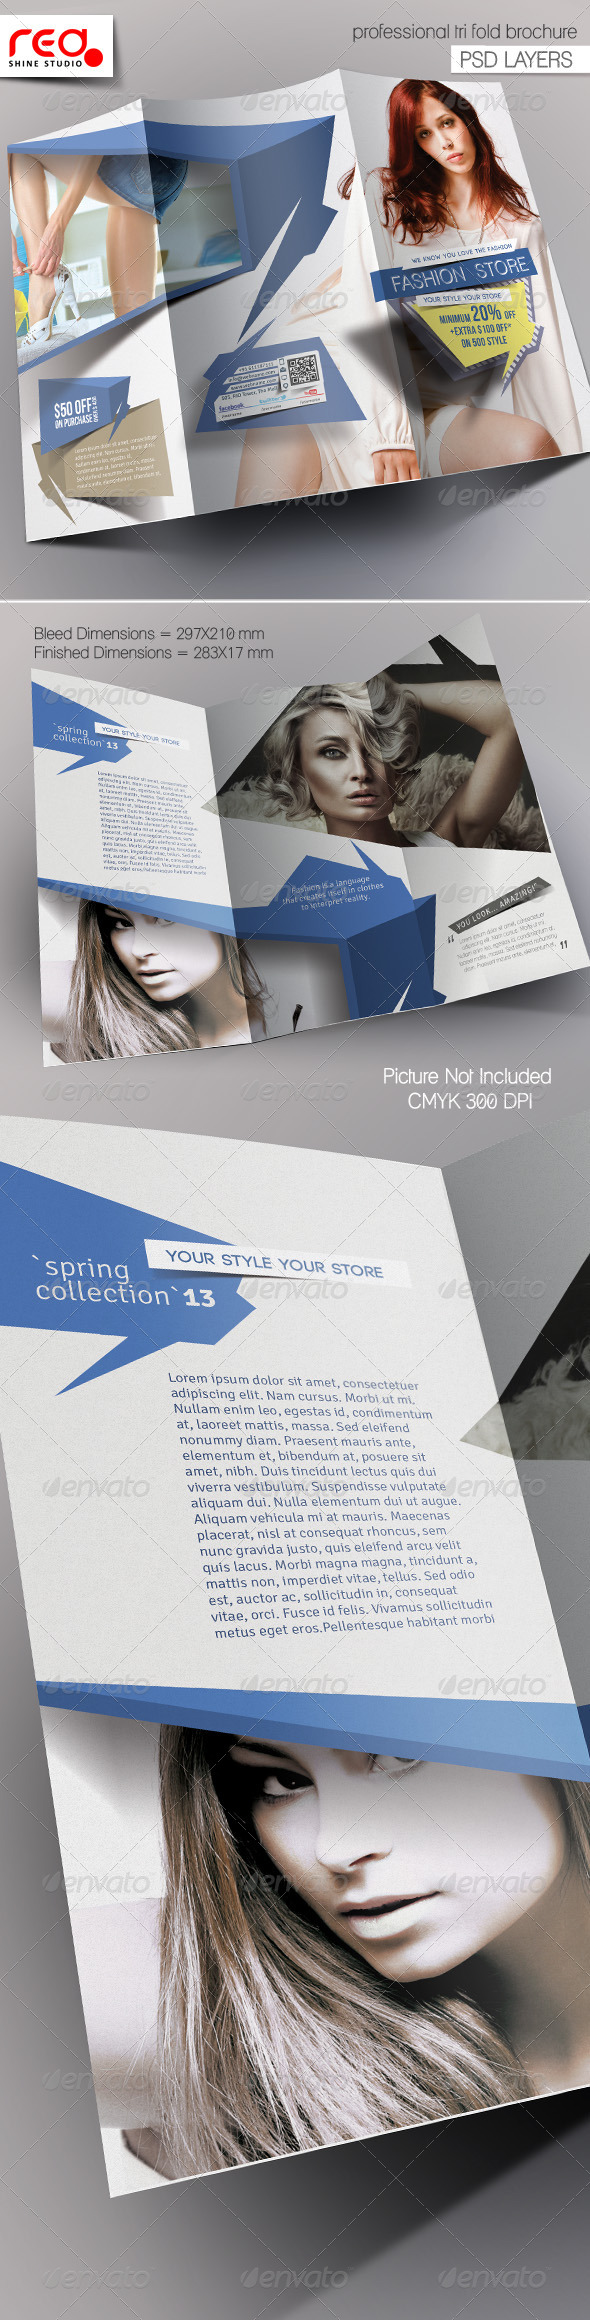 Fashion Store Trifold Brochure Template - Corporate Brochures